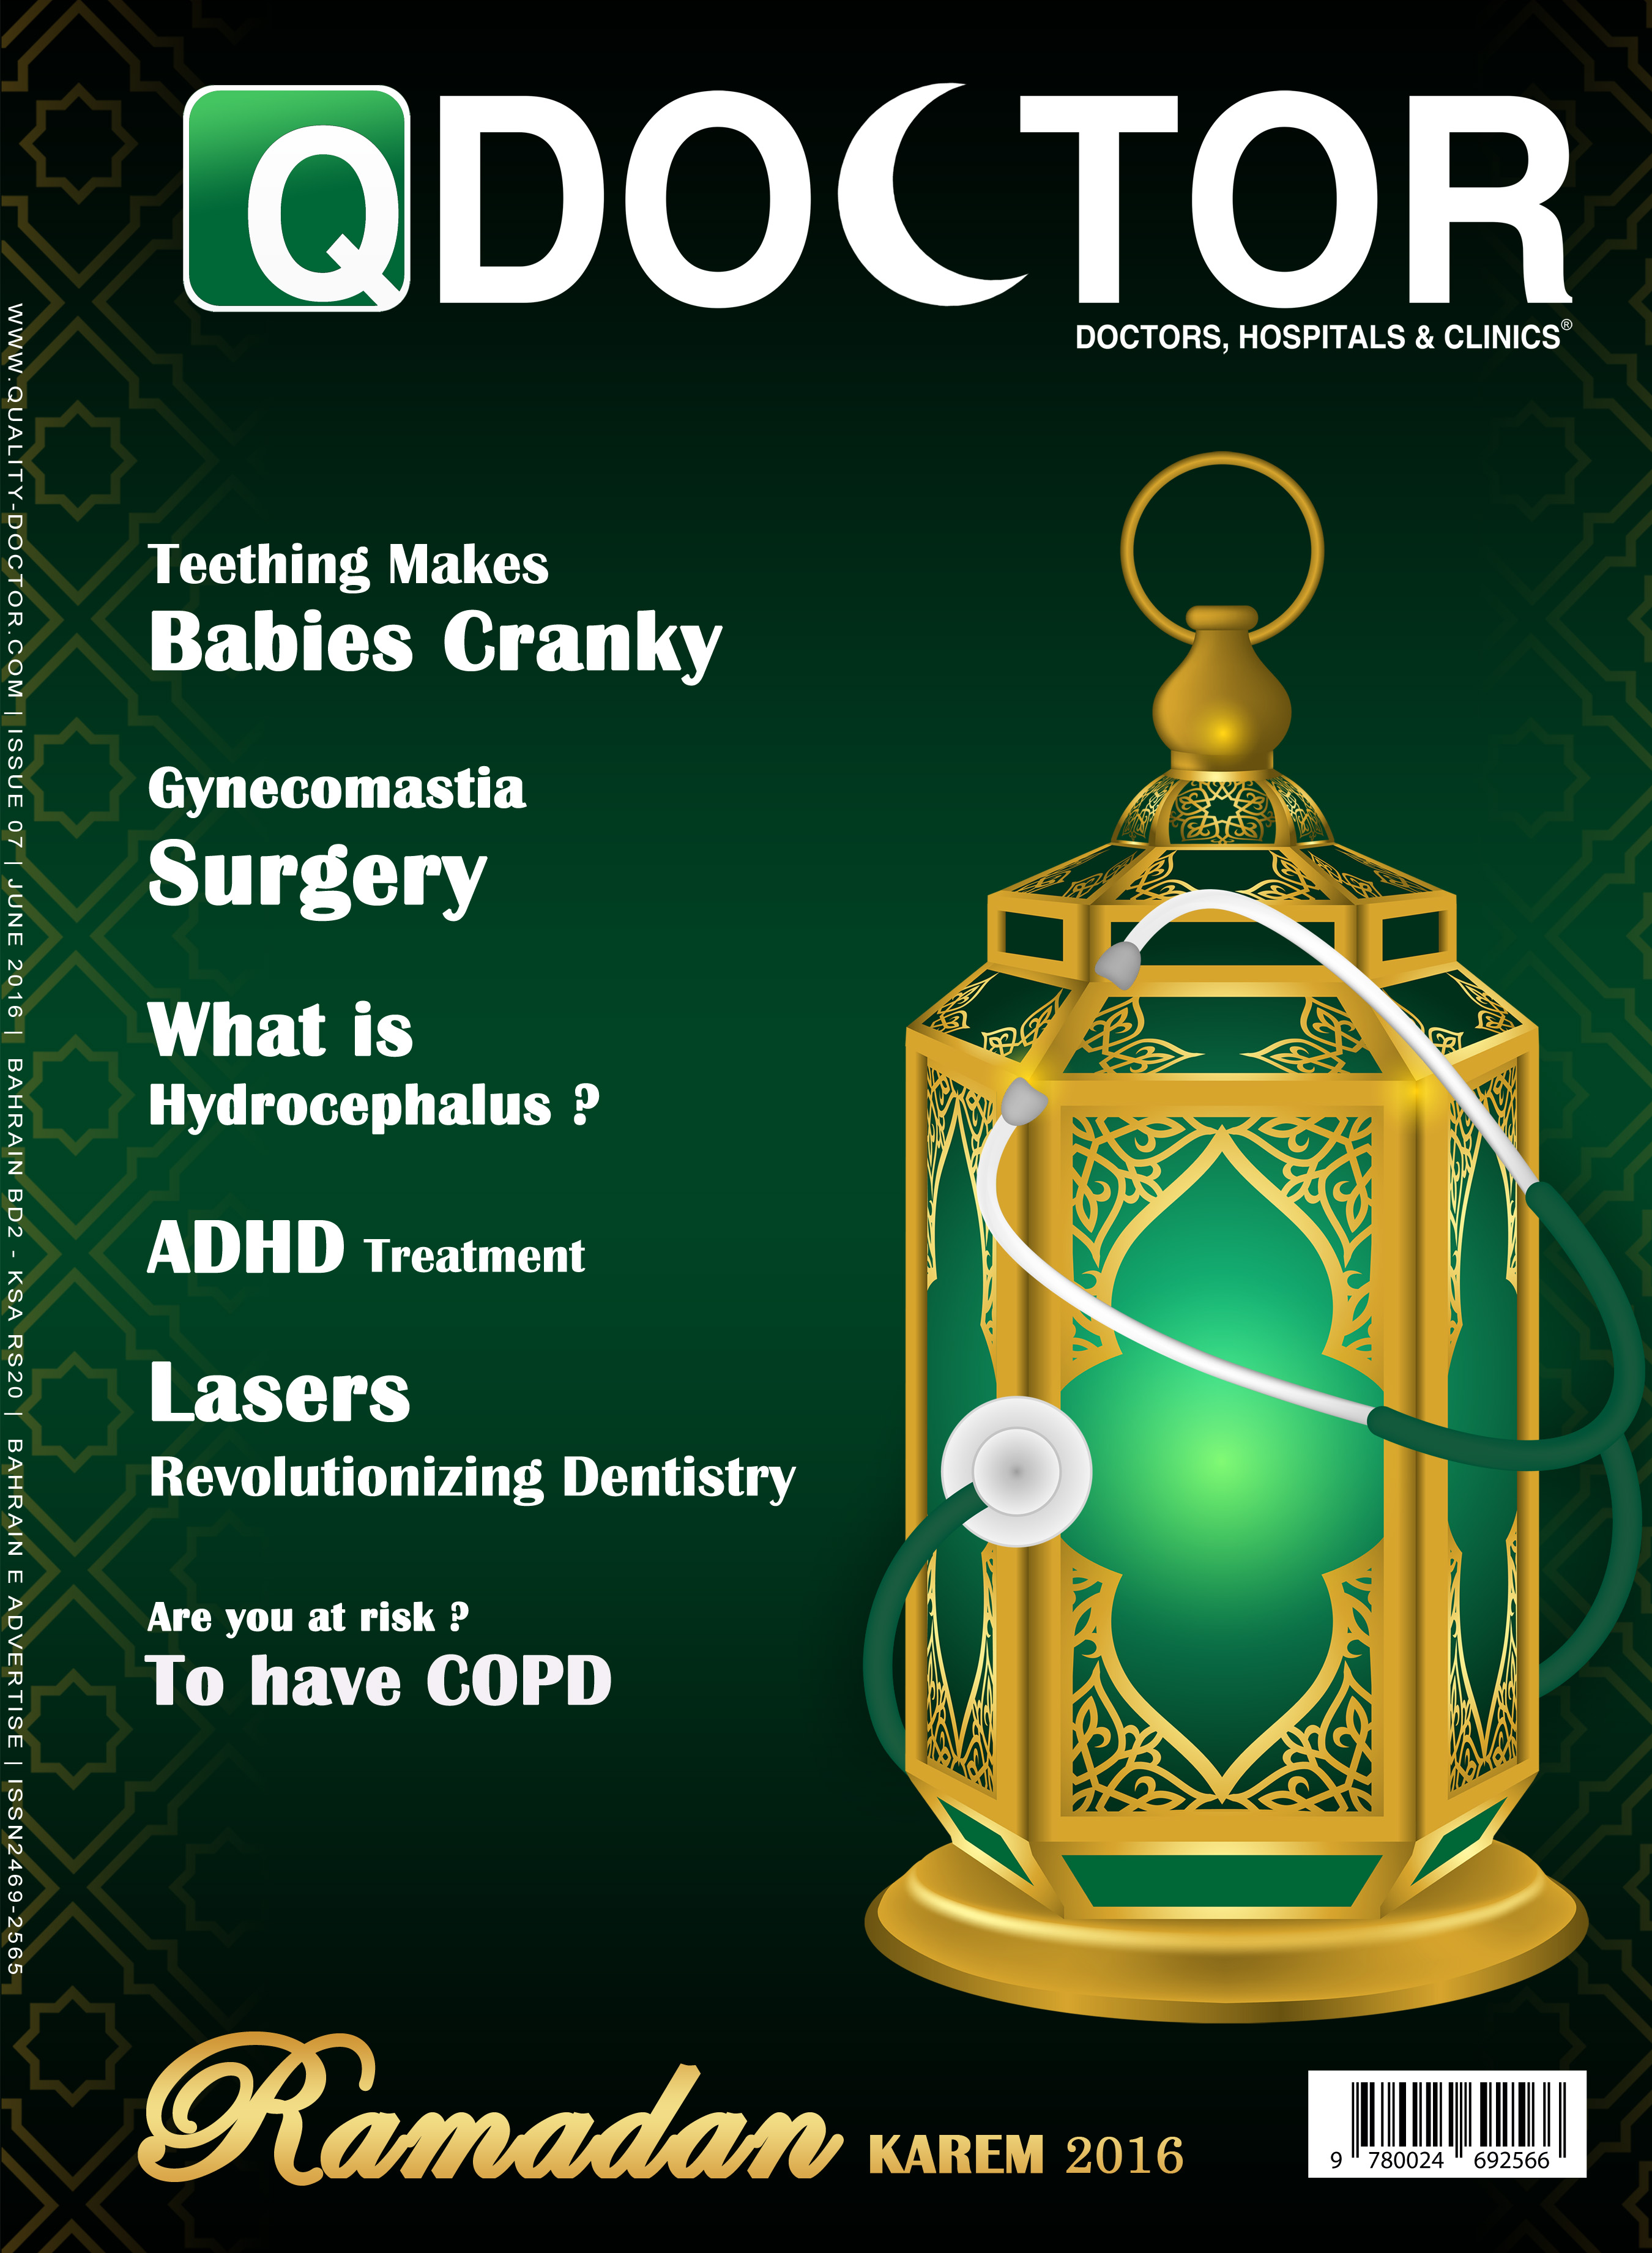 Q Doctor cover 07